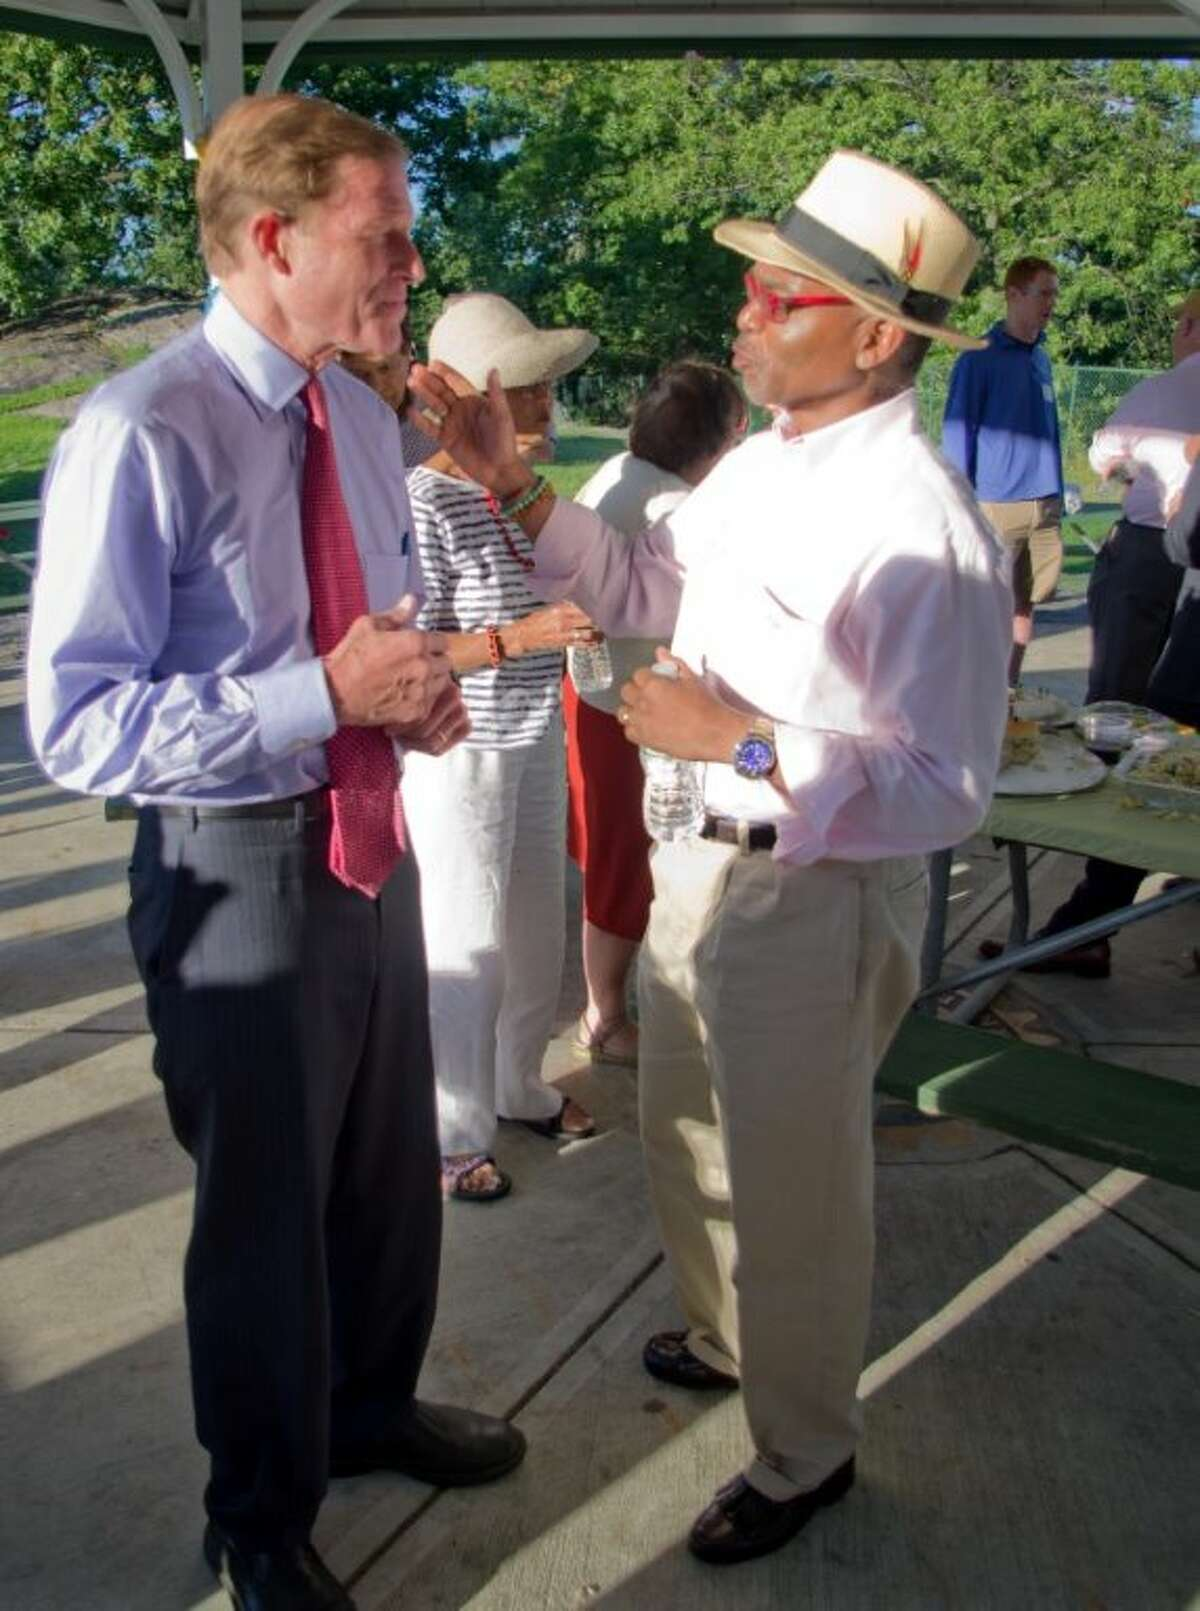 U.S. Sen. Richard Blumenthal speaks to Paul Lowe at theGreenwich Chamber of Commerce annual picnic held at Byram Park on Aug. 14.